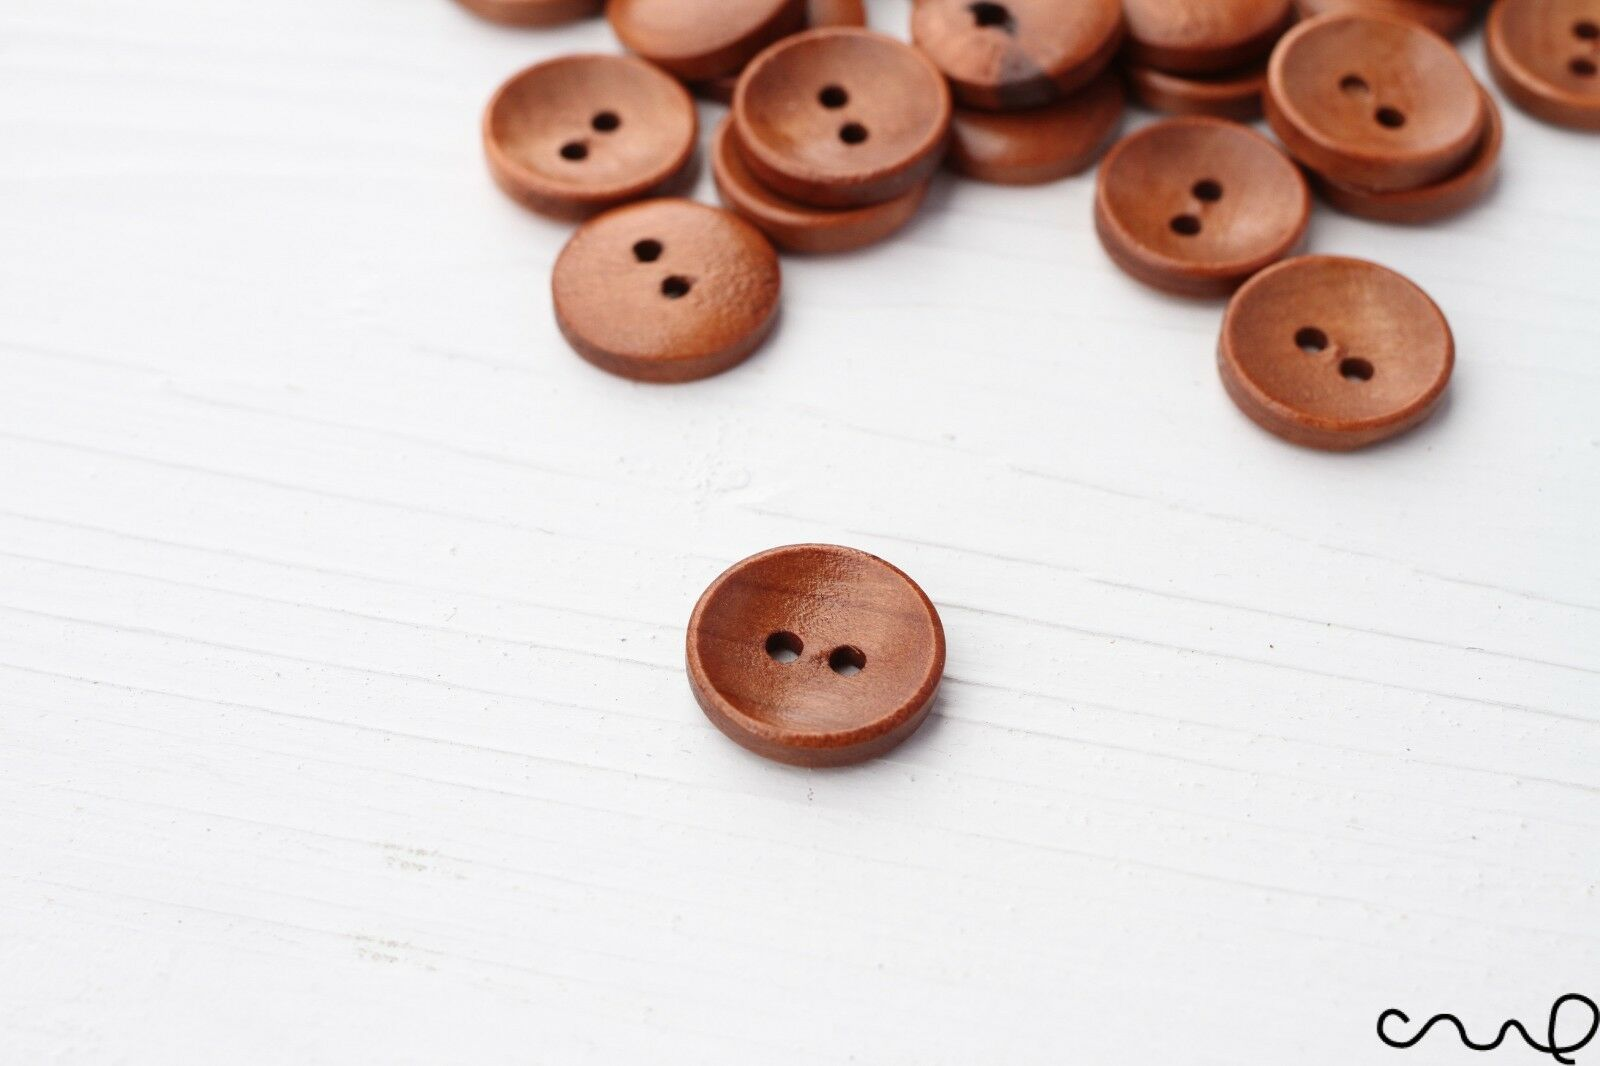 10 pcs Brown TOGGLE Wooden Button Decoration Craft//Kids Sewing 45mmx15mm 2 Holes